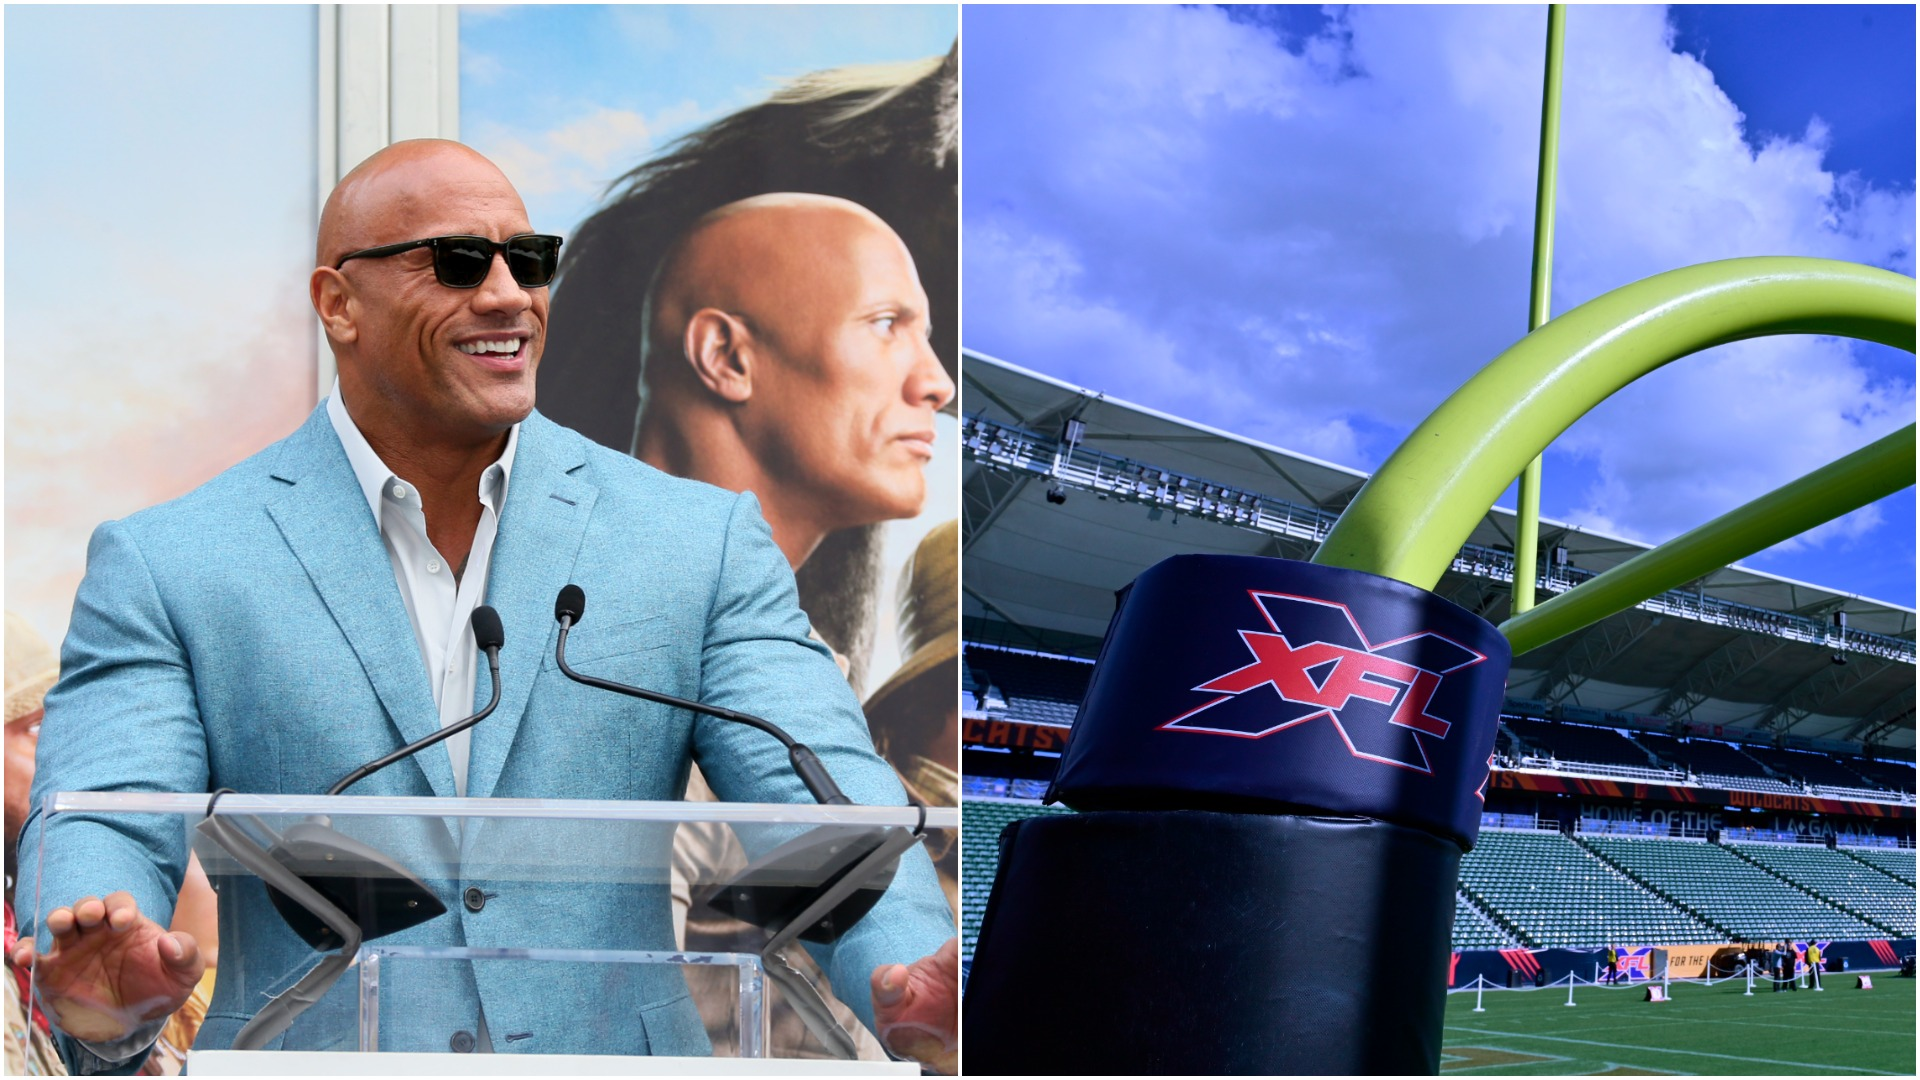 'The Rock' purchases XFL